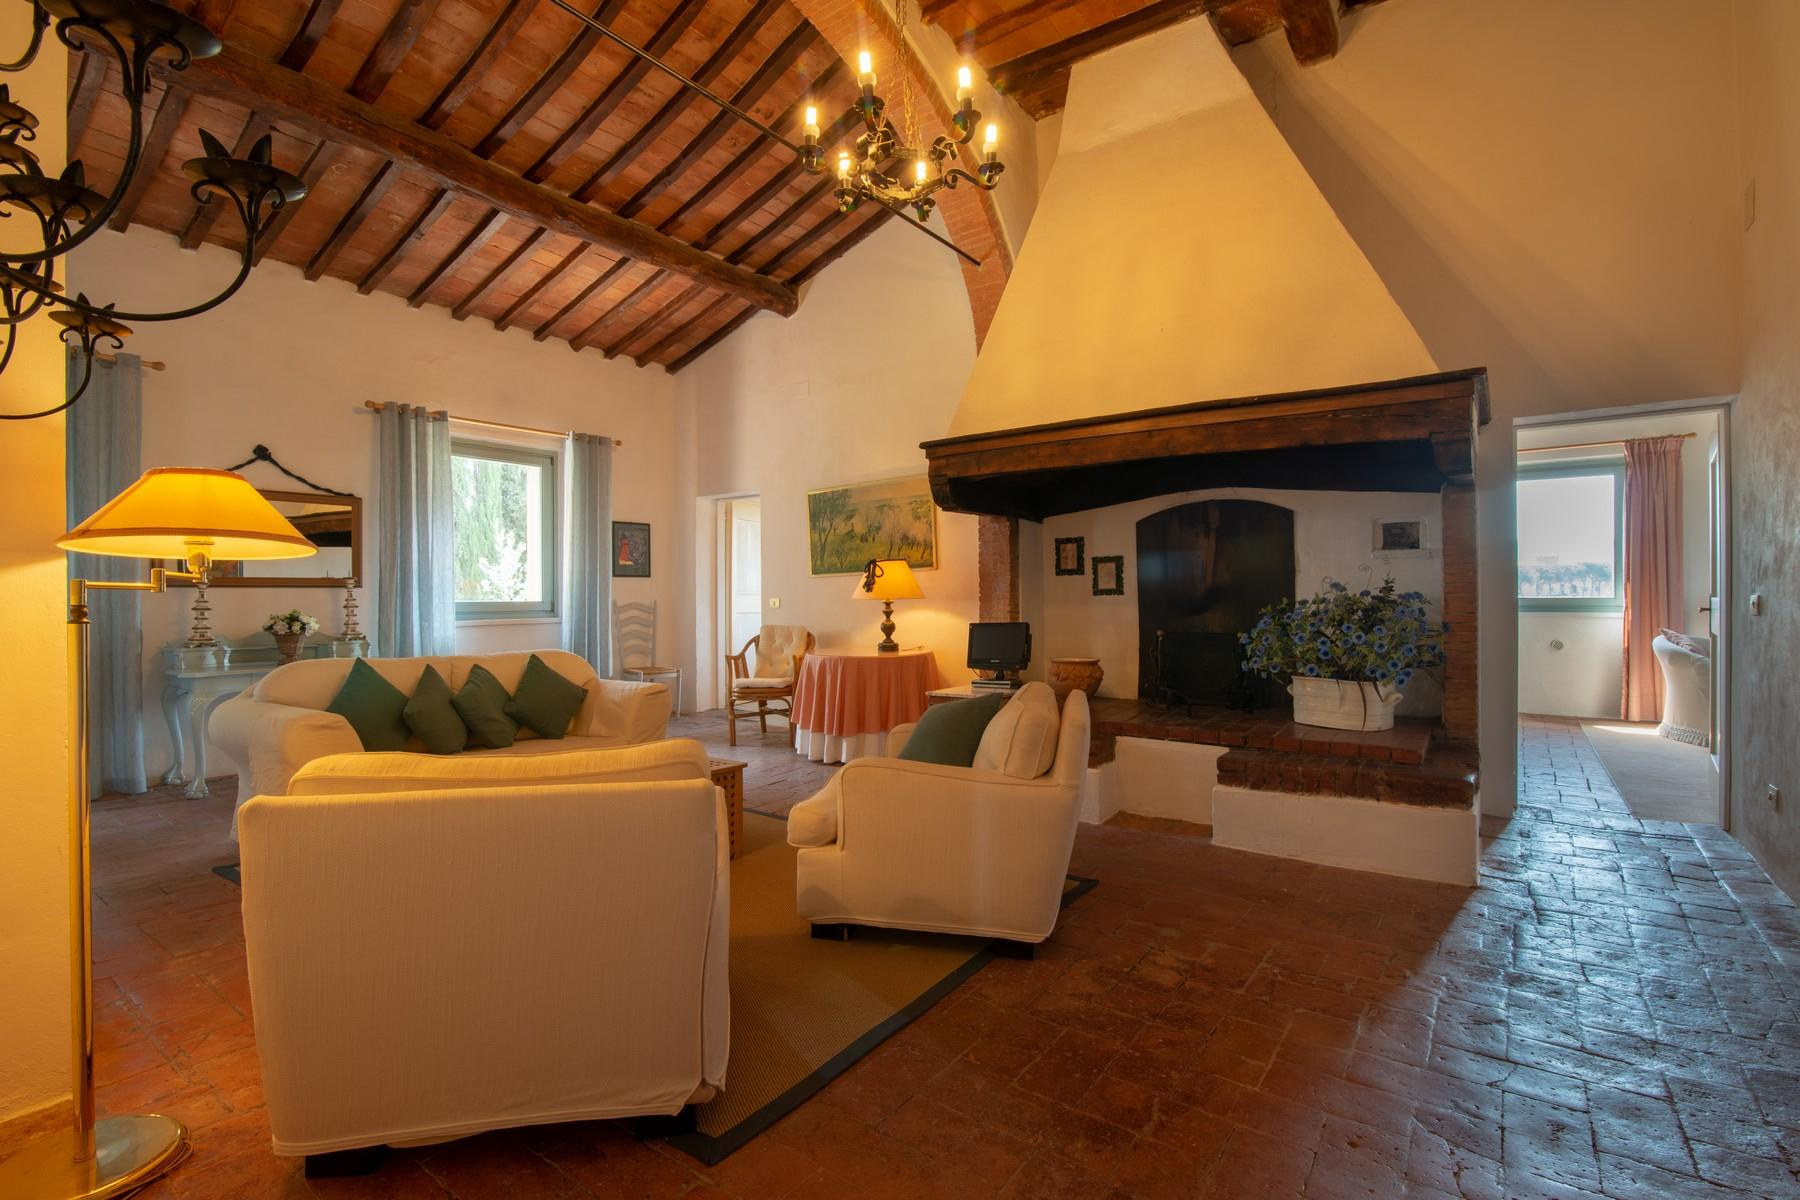 Remarkable Country house B&B with pool near San Gimignano - 7